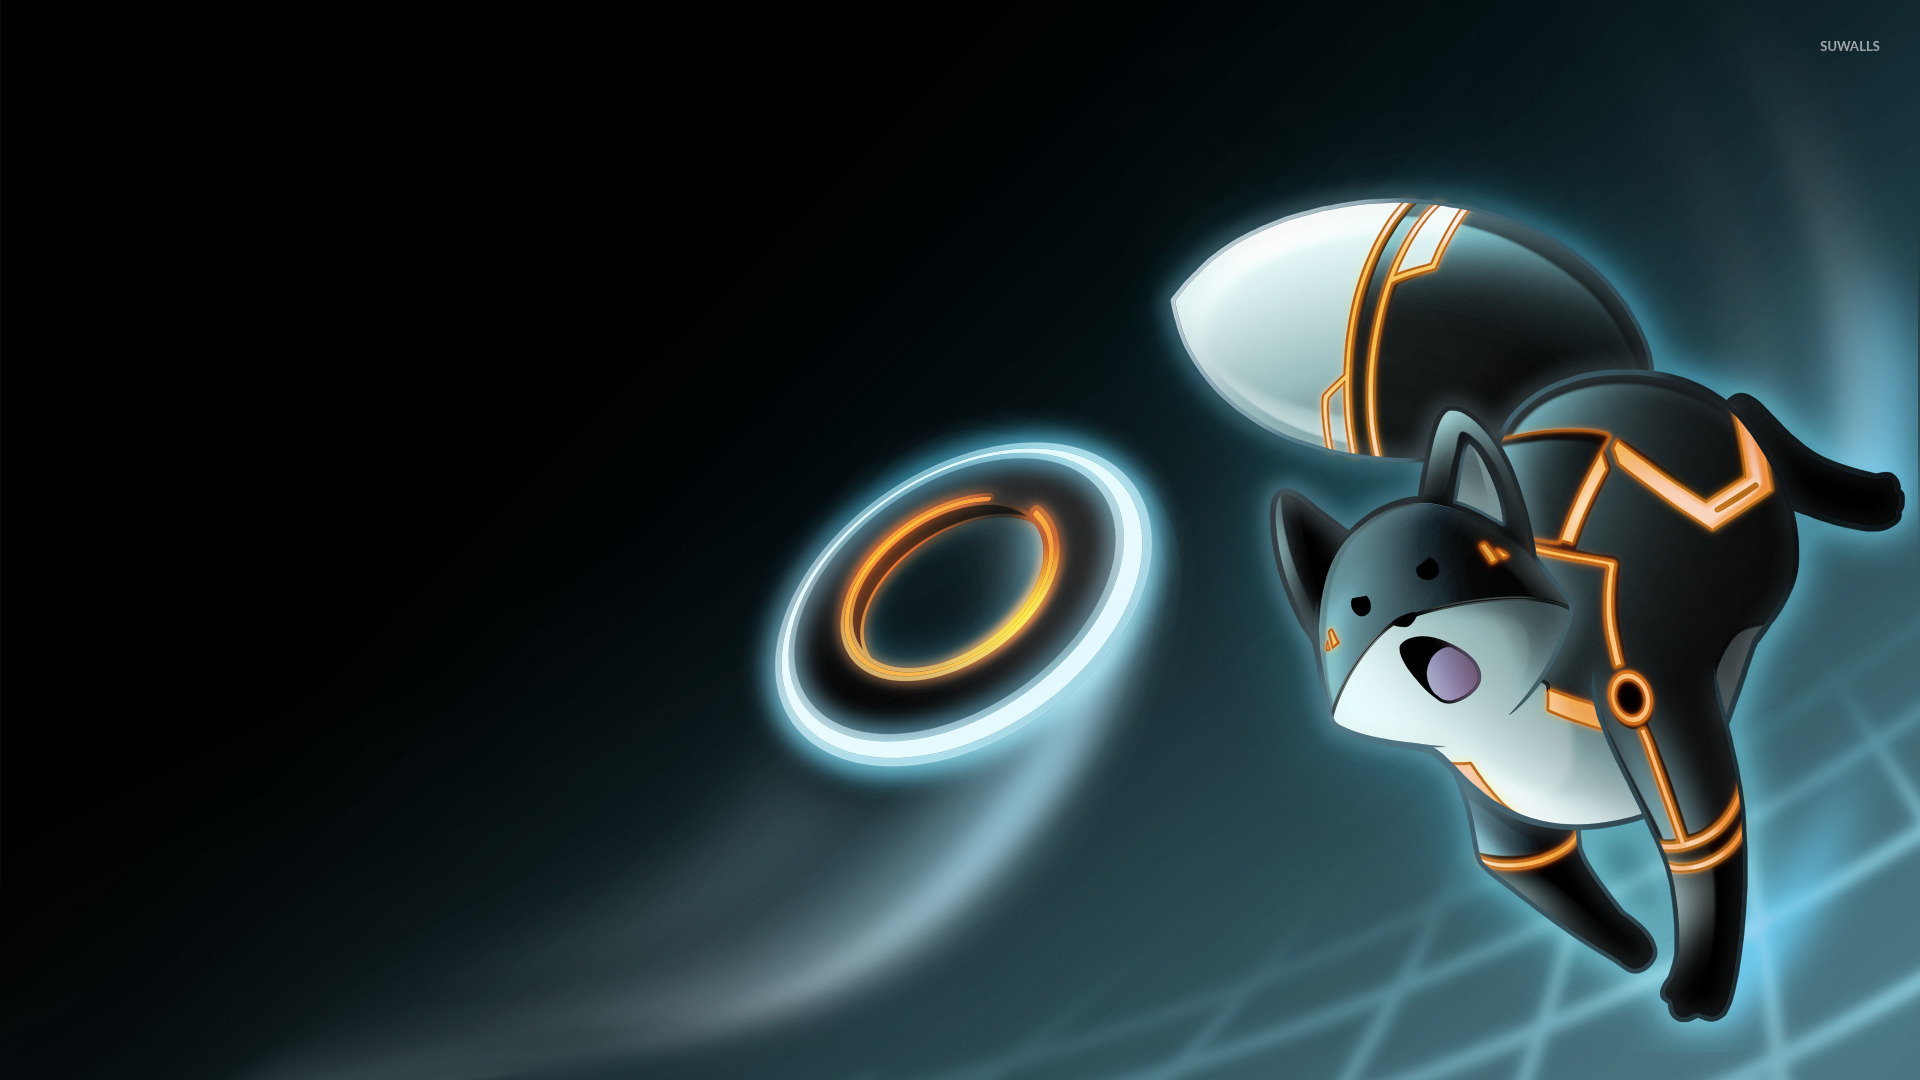 Warrior Cats Wallpaper With Quotes Space Cat Wallpaper Fantasy Wallpapers 38462